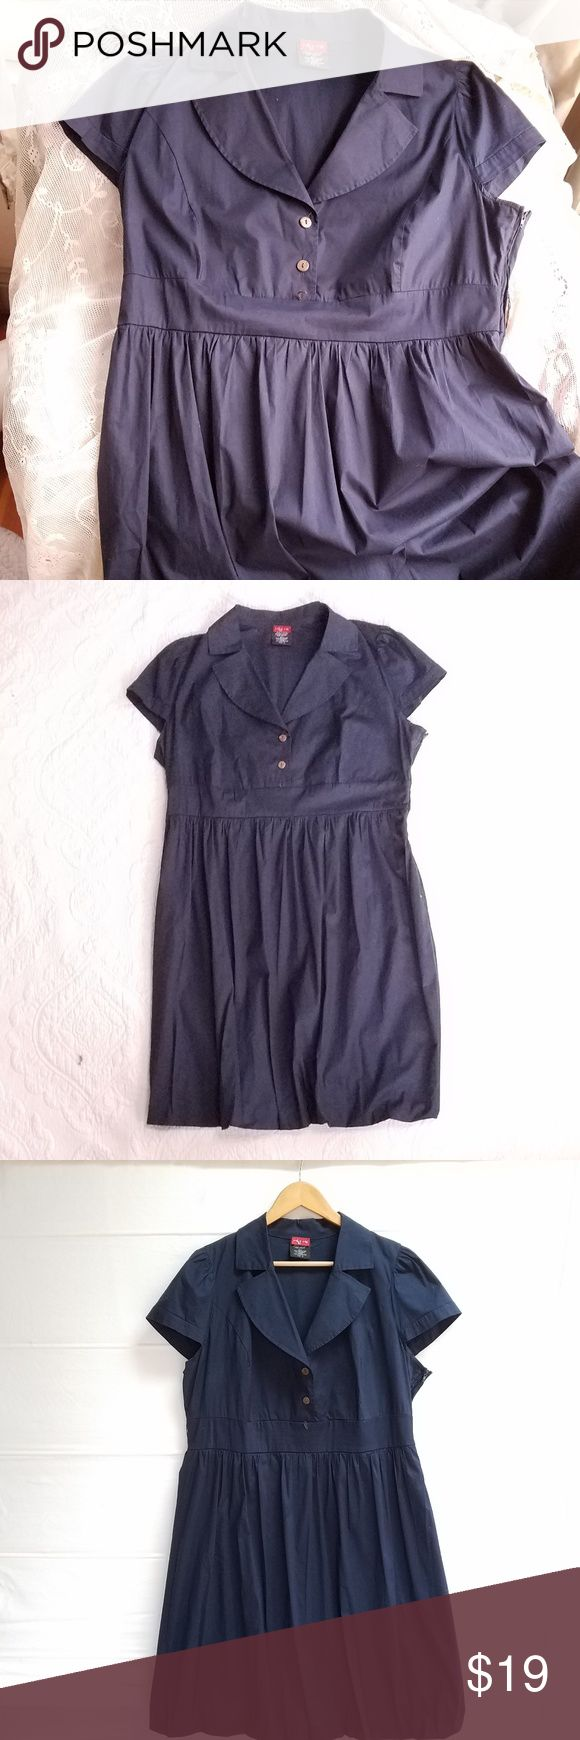 "Ruby Rox Navy-Blue Shirtwaist Dress Classic, retro shirtwaist dress by Roby Rox in navy-blue polyester/Spandex. Side zipper. Cap sleeves. Wide waistband (missing belt). Full skirt with ""balloon"" hem (see pic). Fully lined. Excellent, like-new condition. Machine wash, cold. Measurements (flat): chest/armpits 24"", waist 19"", length 39"". Ruby Rox Dresses"